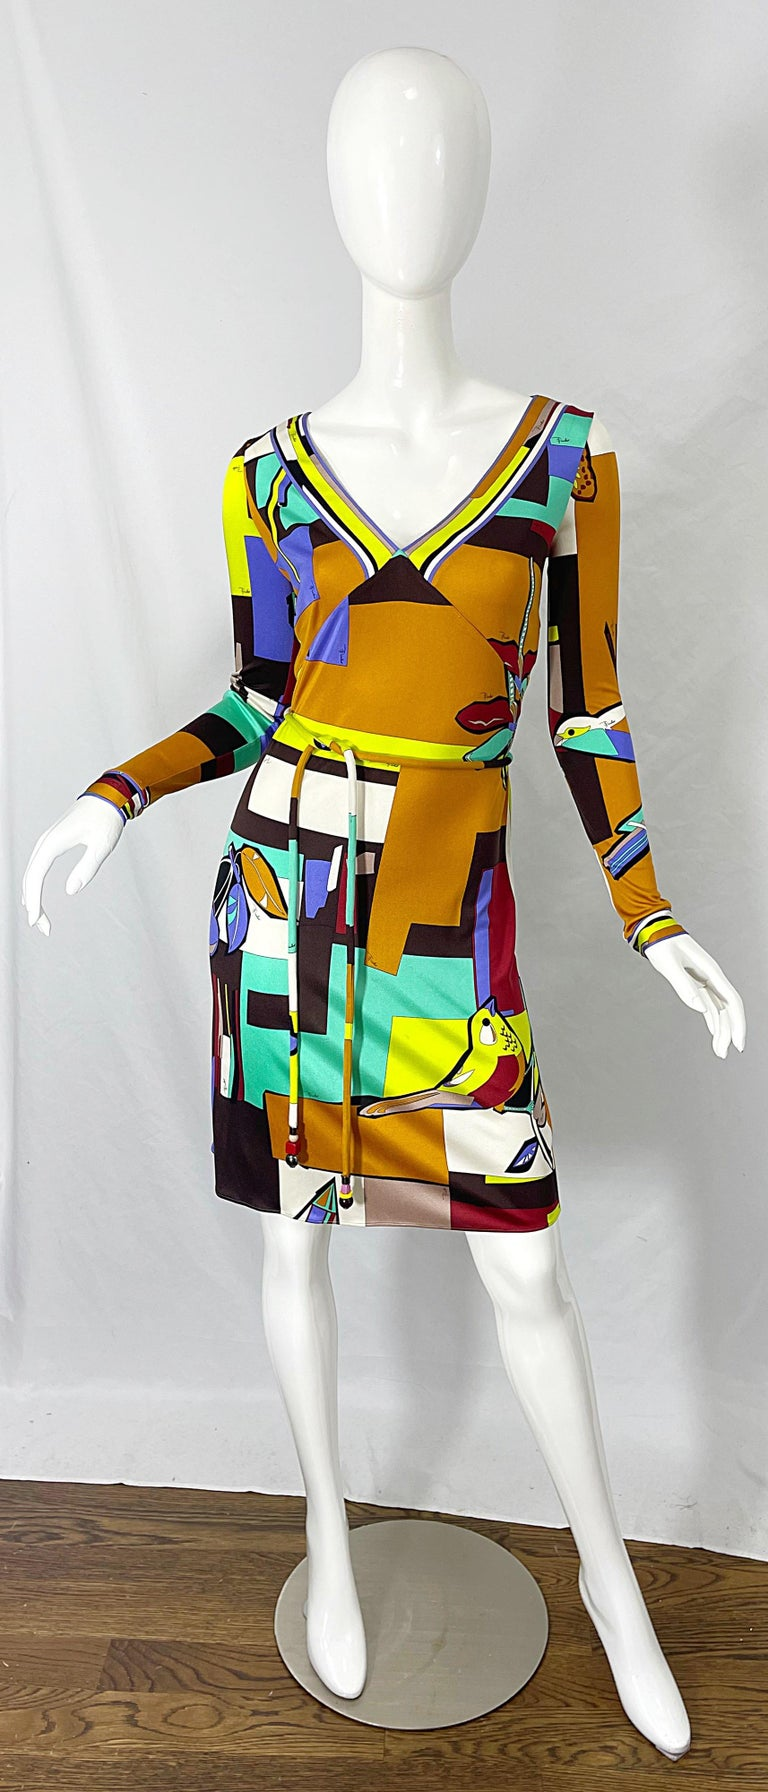 Amazing 1990s EMILIO PUCCI novelty bird, butterfly, and dragonfly print silk jersey long sleeve belted dress ! Features a tailored v-neck bodice with a slinky skirt. Vibrant colors of turquoise blue, purple, neon green, white, black and terra cotta.